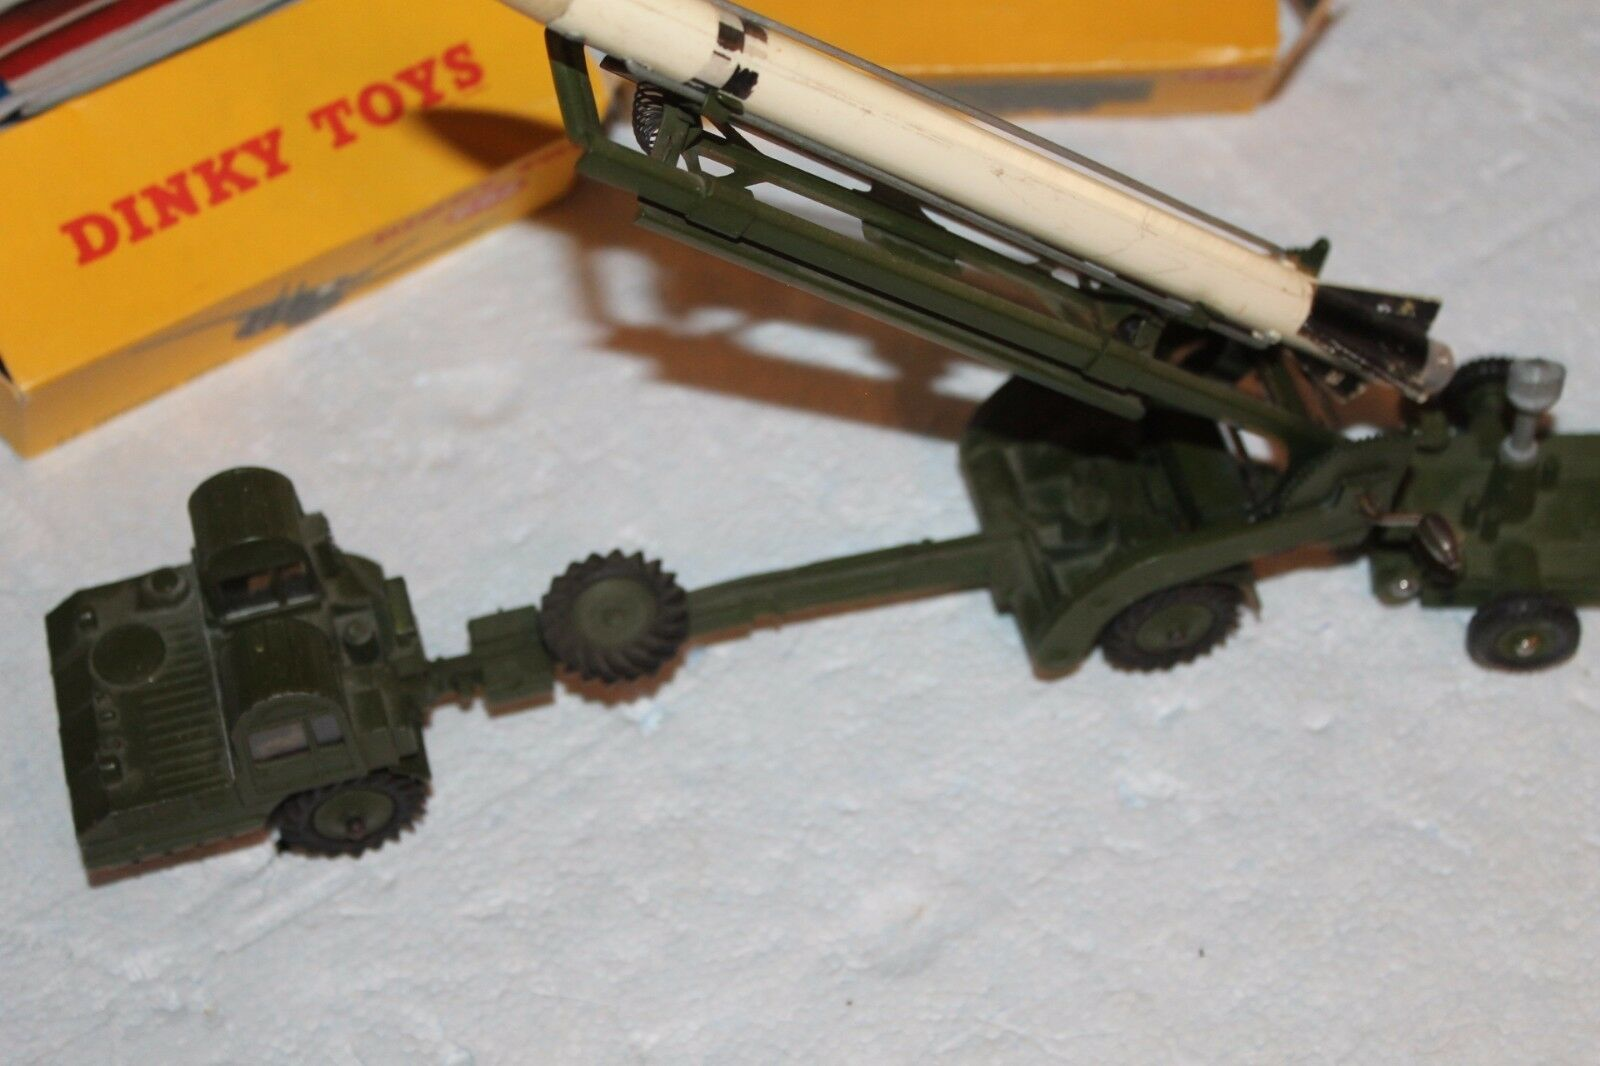 MILITARY DINKY MISILLE ERECTOR AND PLATFORM VEHICLE